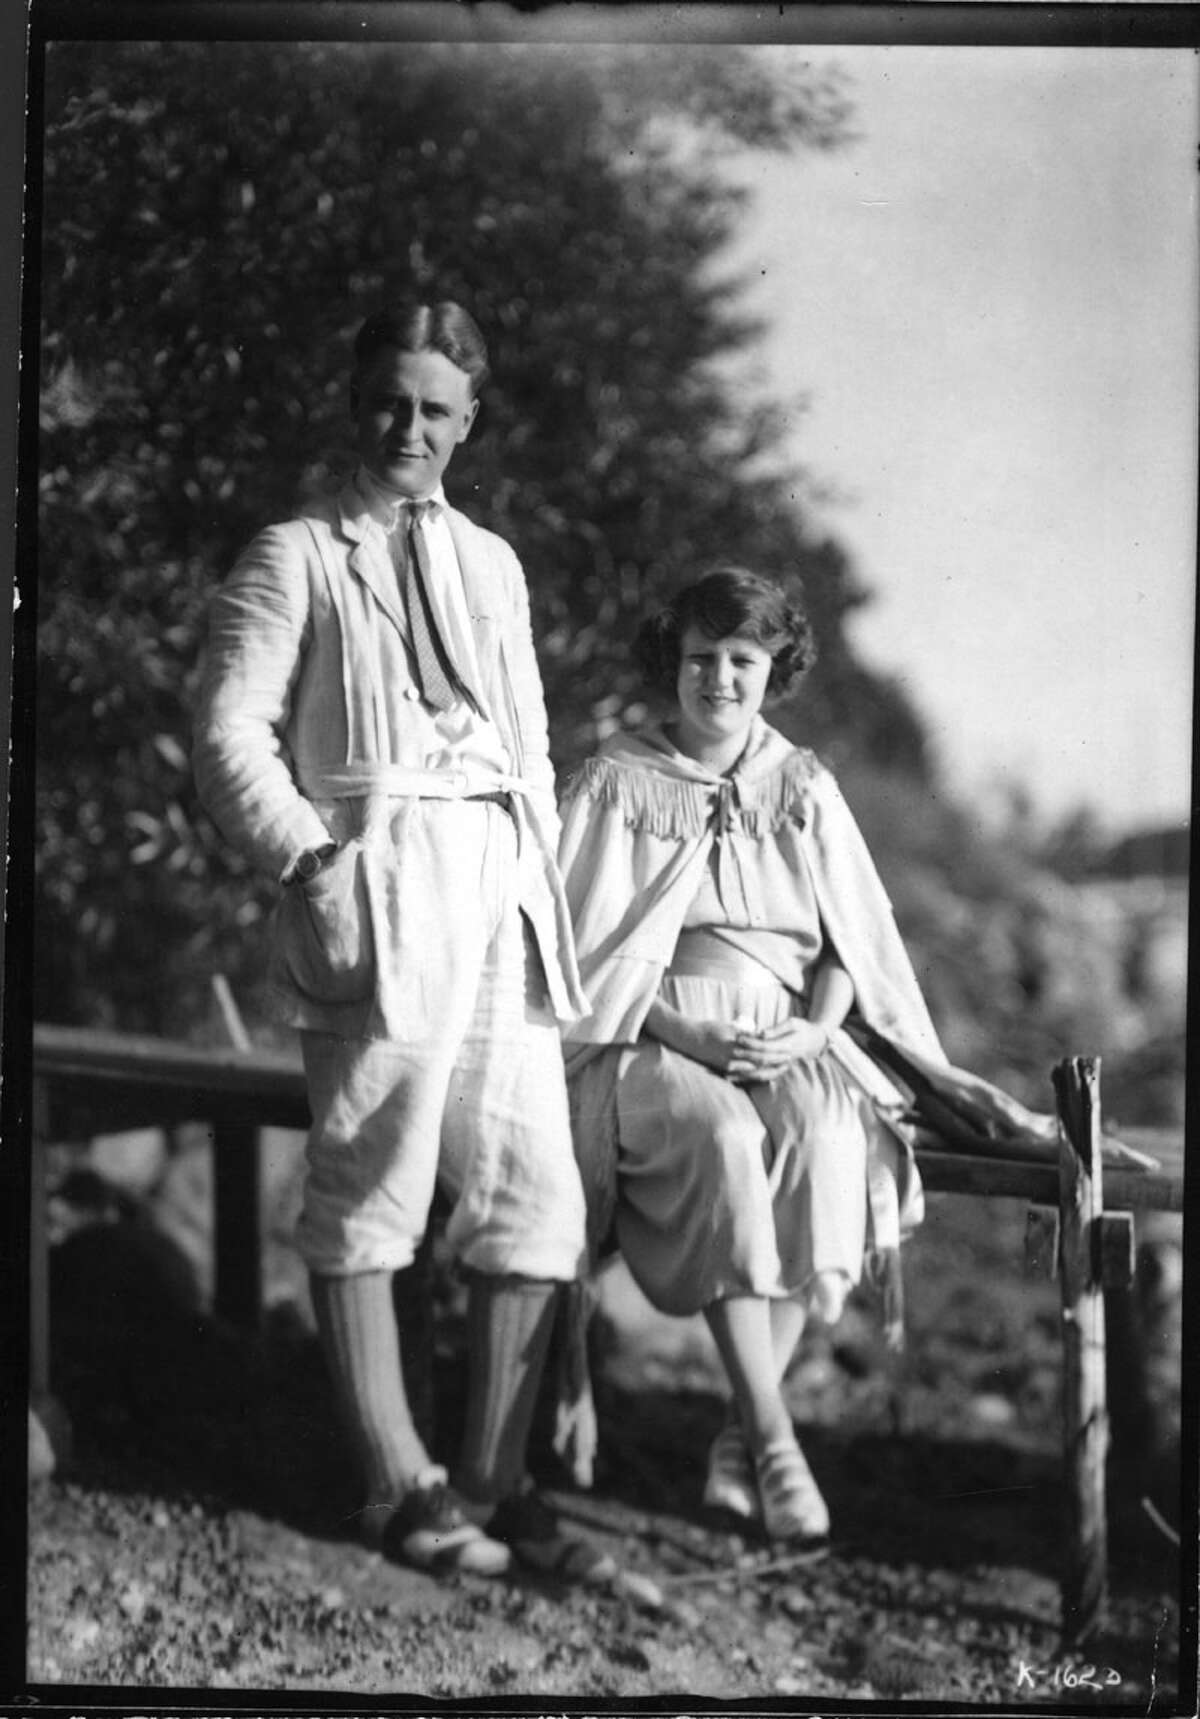 F. Scott Fitzgerald and his wife Zelda lived in a house on South Compo Road in Westport in 1920.